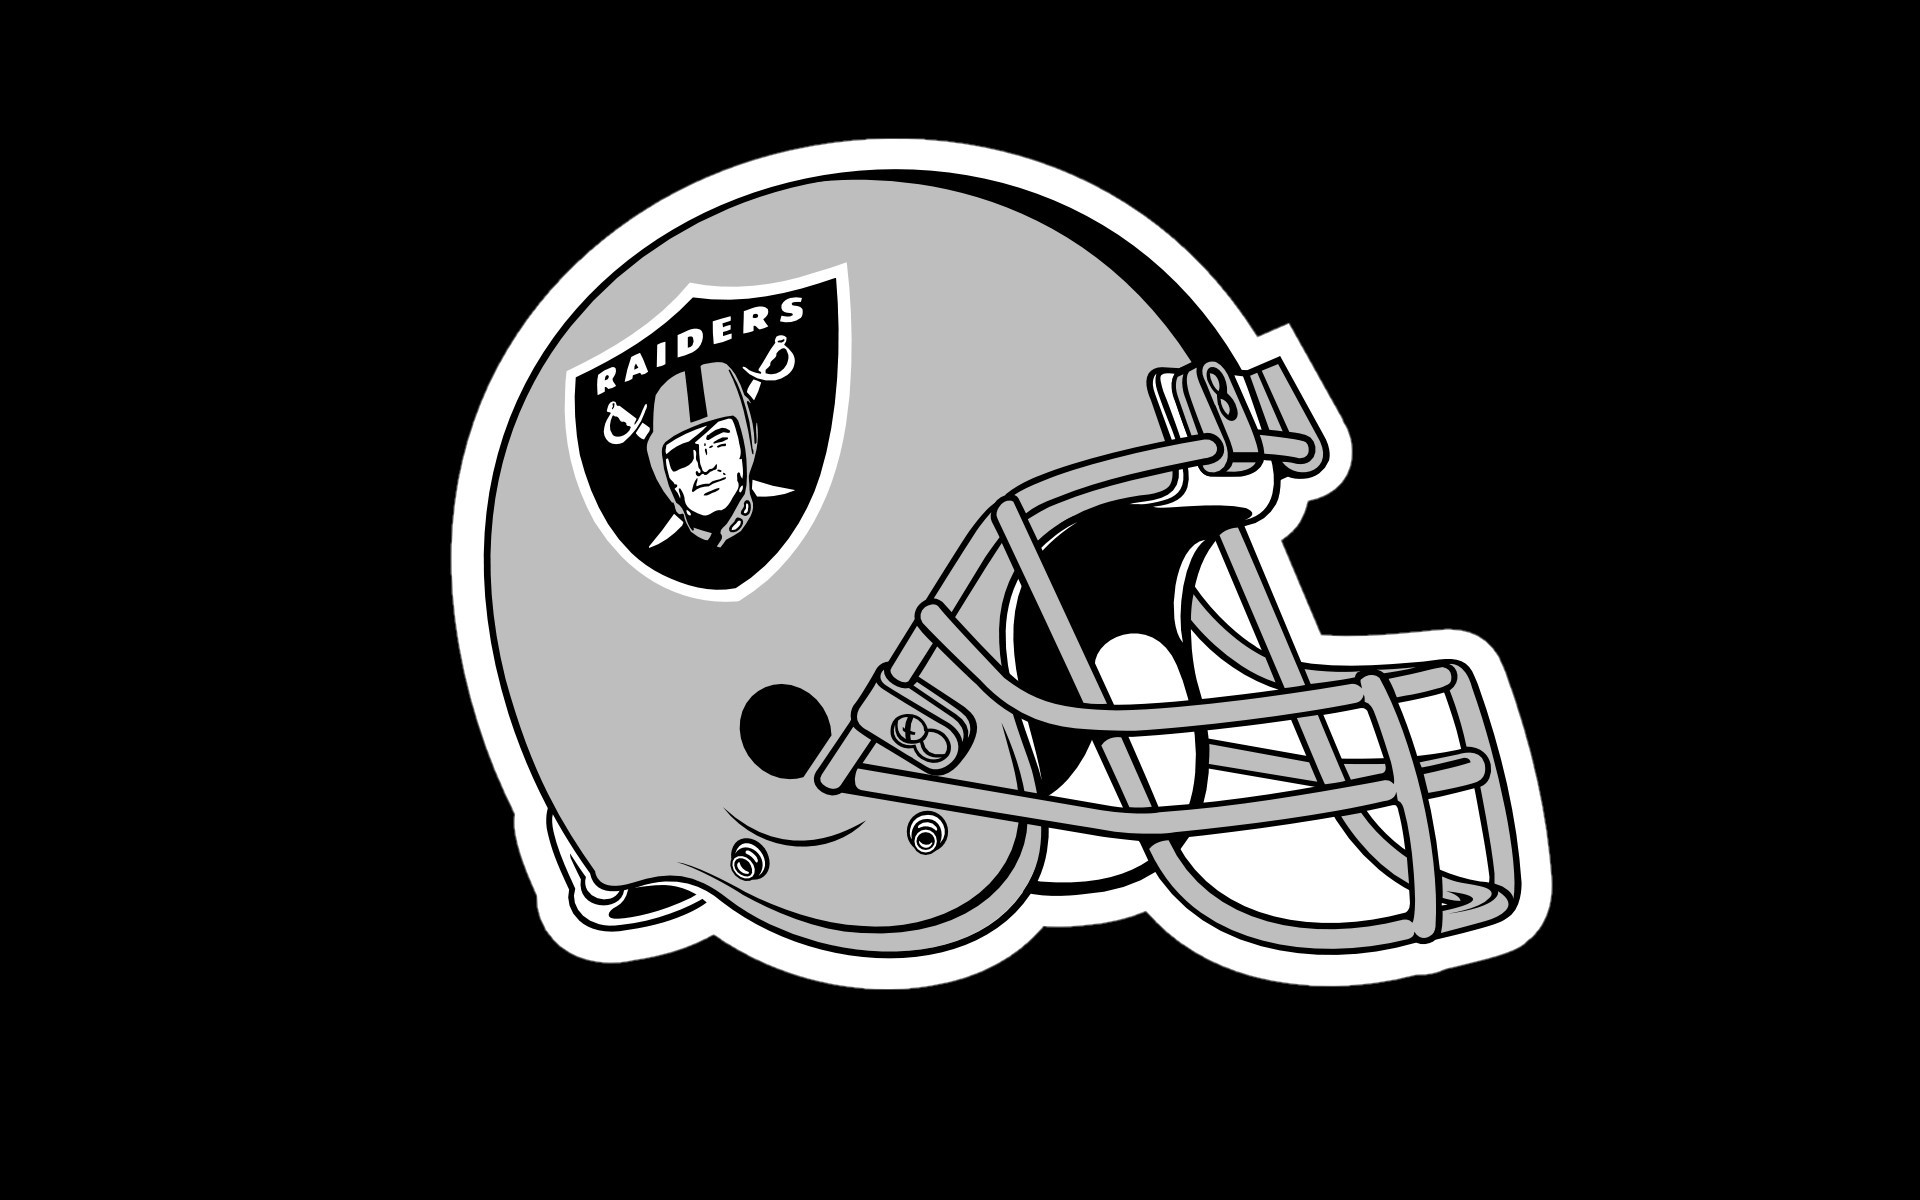 1920x1200 Download free oakland raiders wallpapers for your mobile phone 640×960 Oakland Raiders Wallpapers